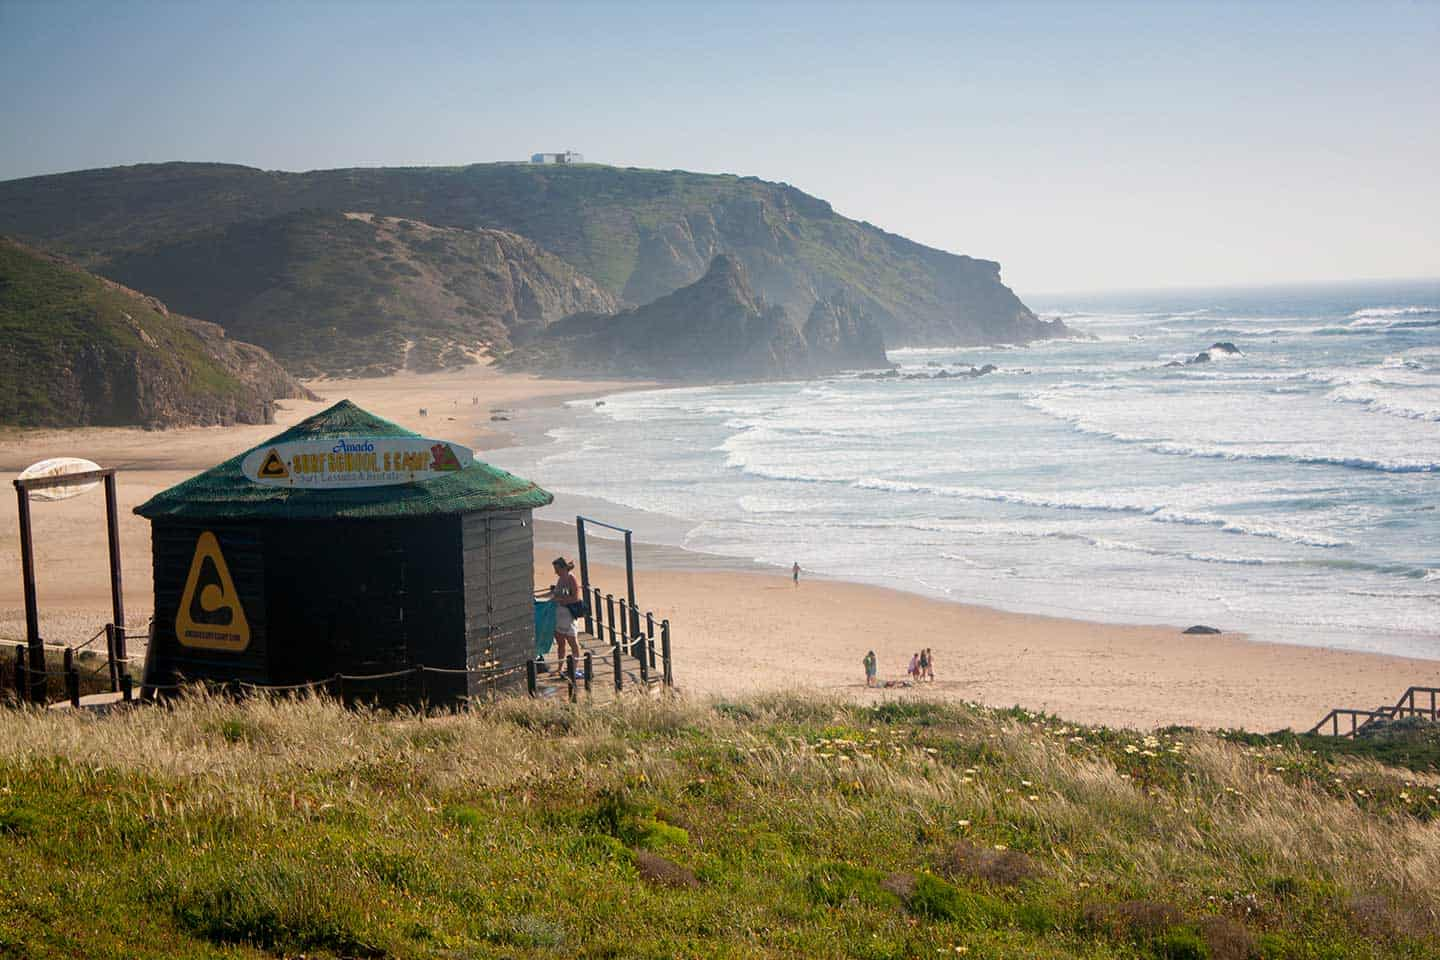 Algarve surf school Image of Praia do Amado beach and surf school hut